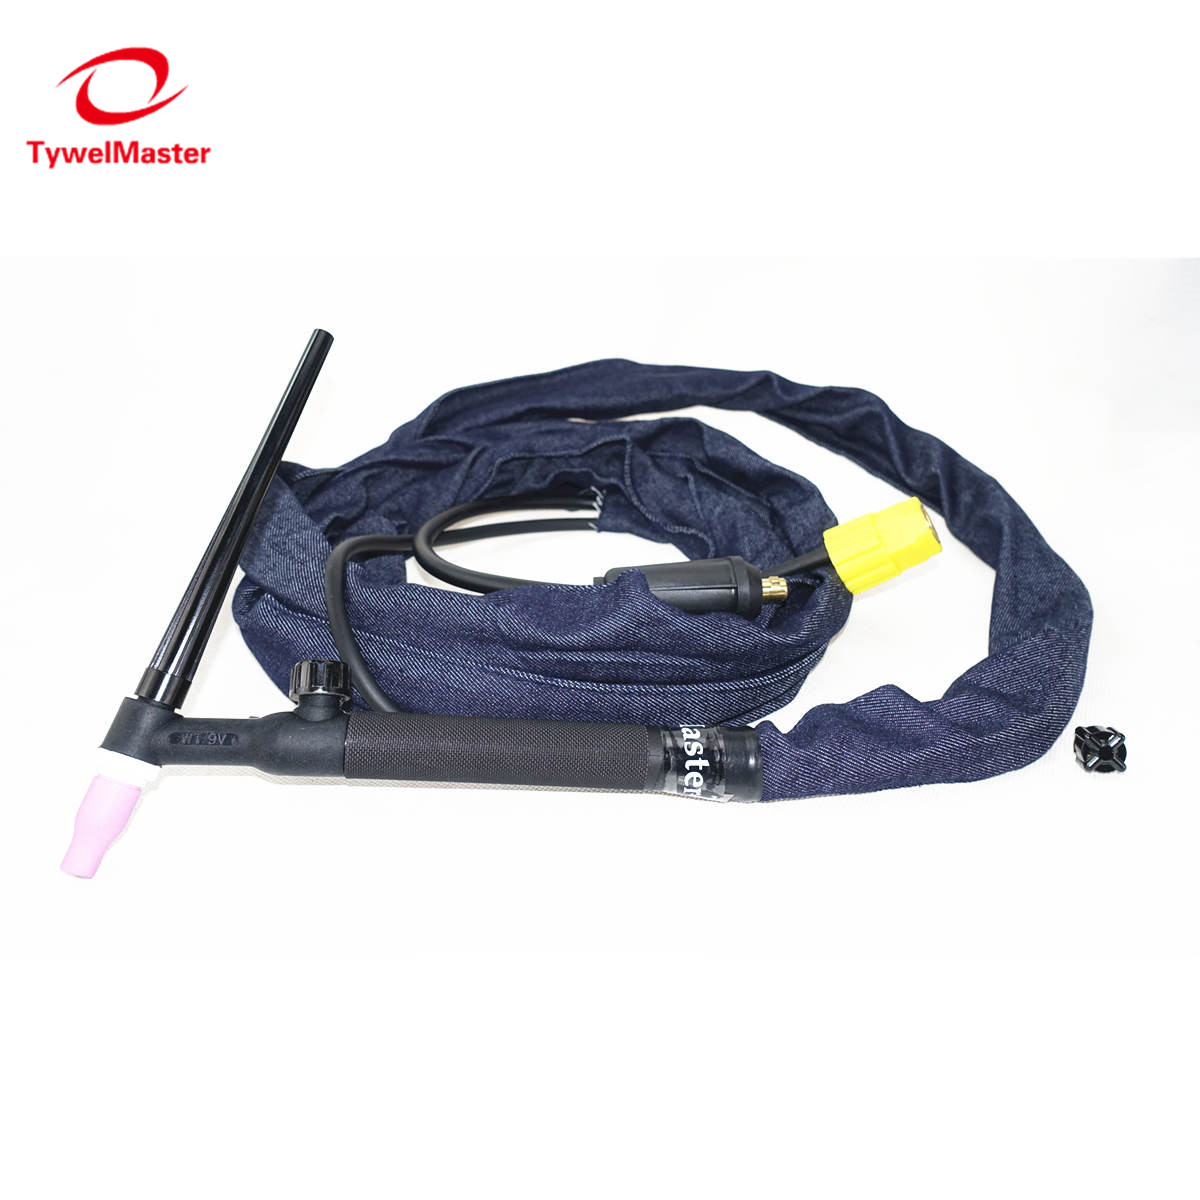 WP9V TIG Torch 4m 13ft Gas Tungsten Arc Welding Torch WP9 Argon Air Cooled WP-9 Gas Valve TIG Welding Torch